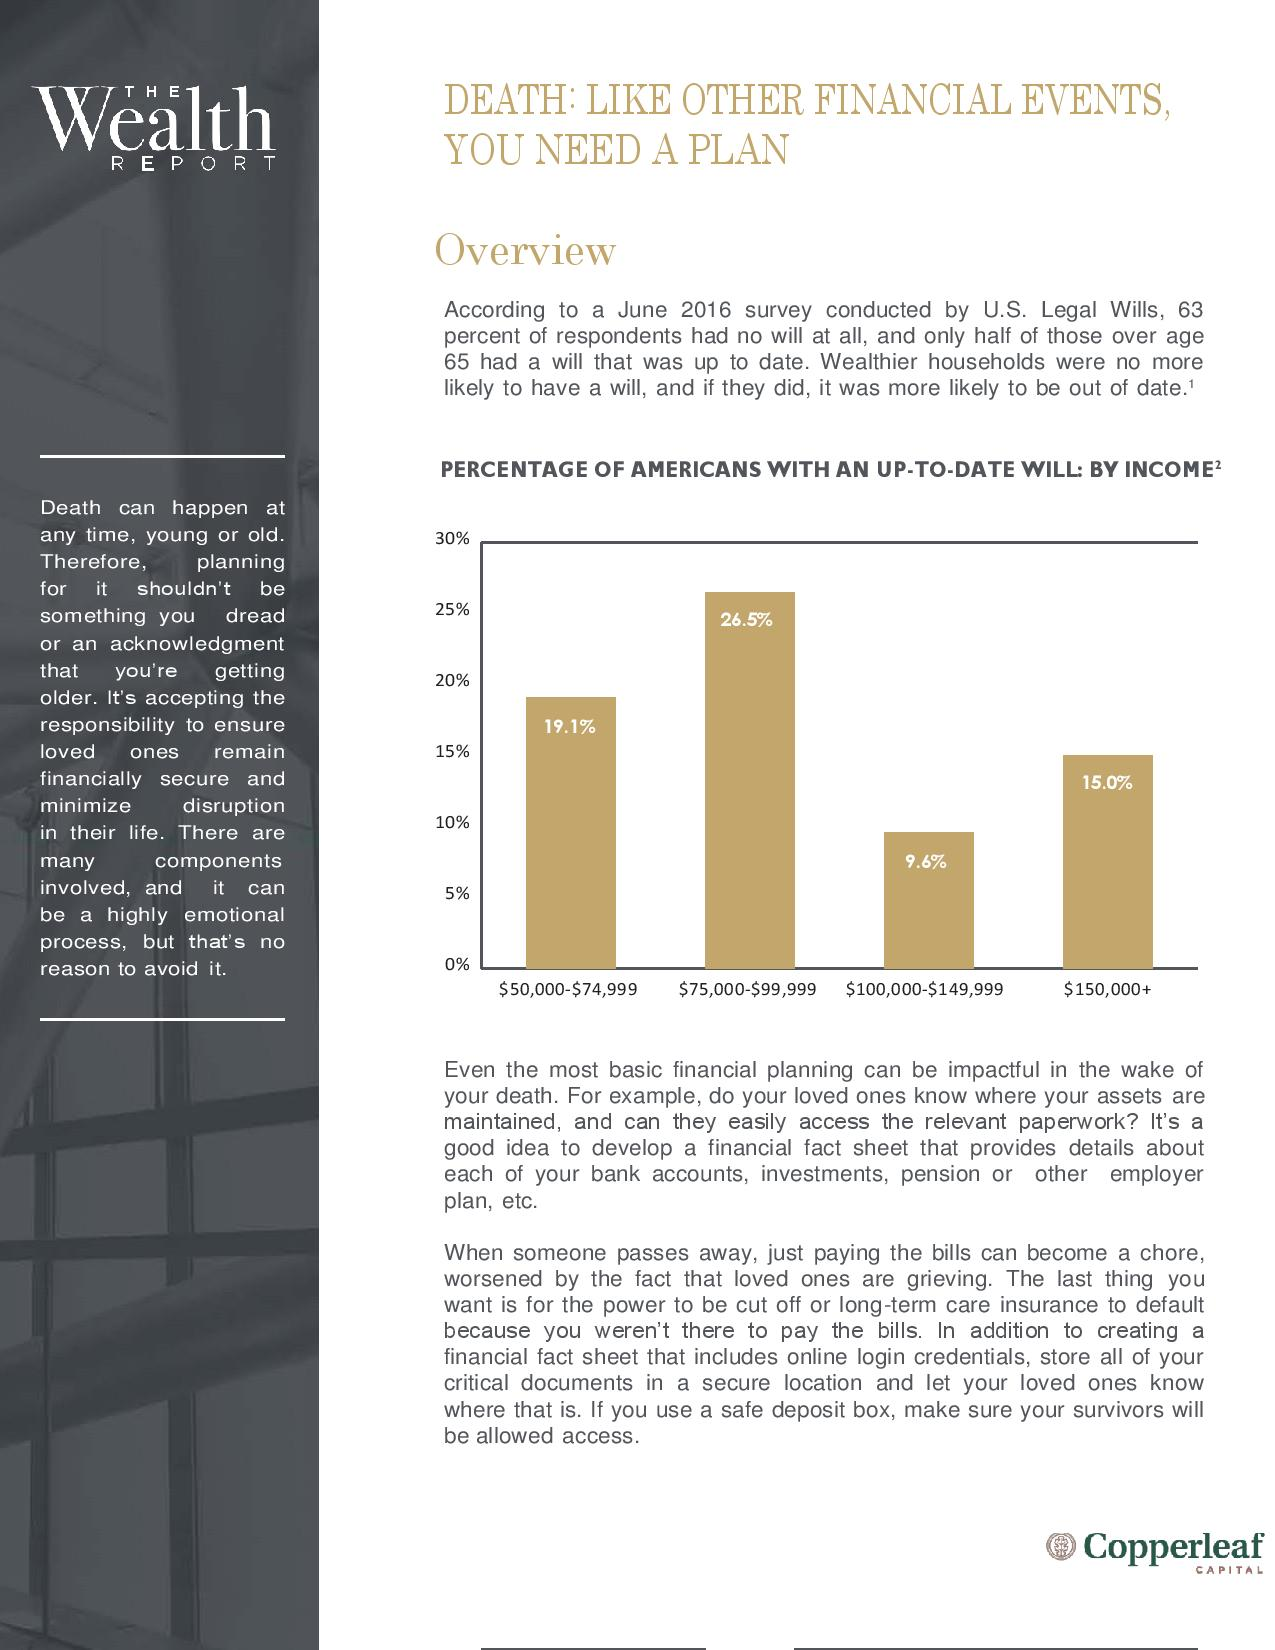 death-like-other-financial-events2 (1)-page-001.jpg